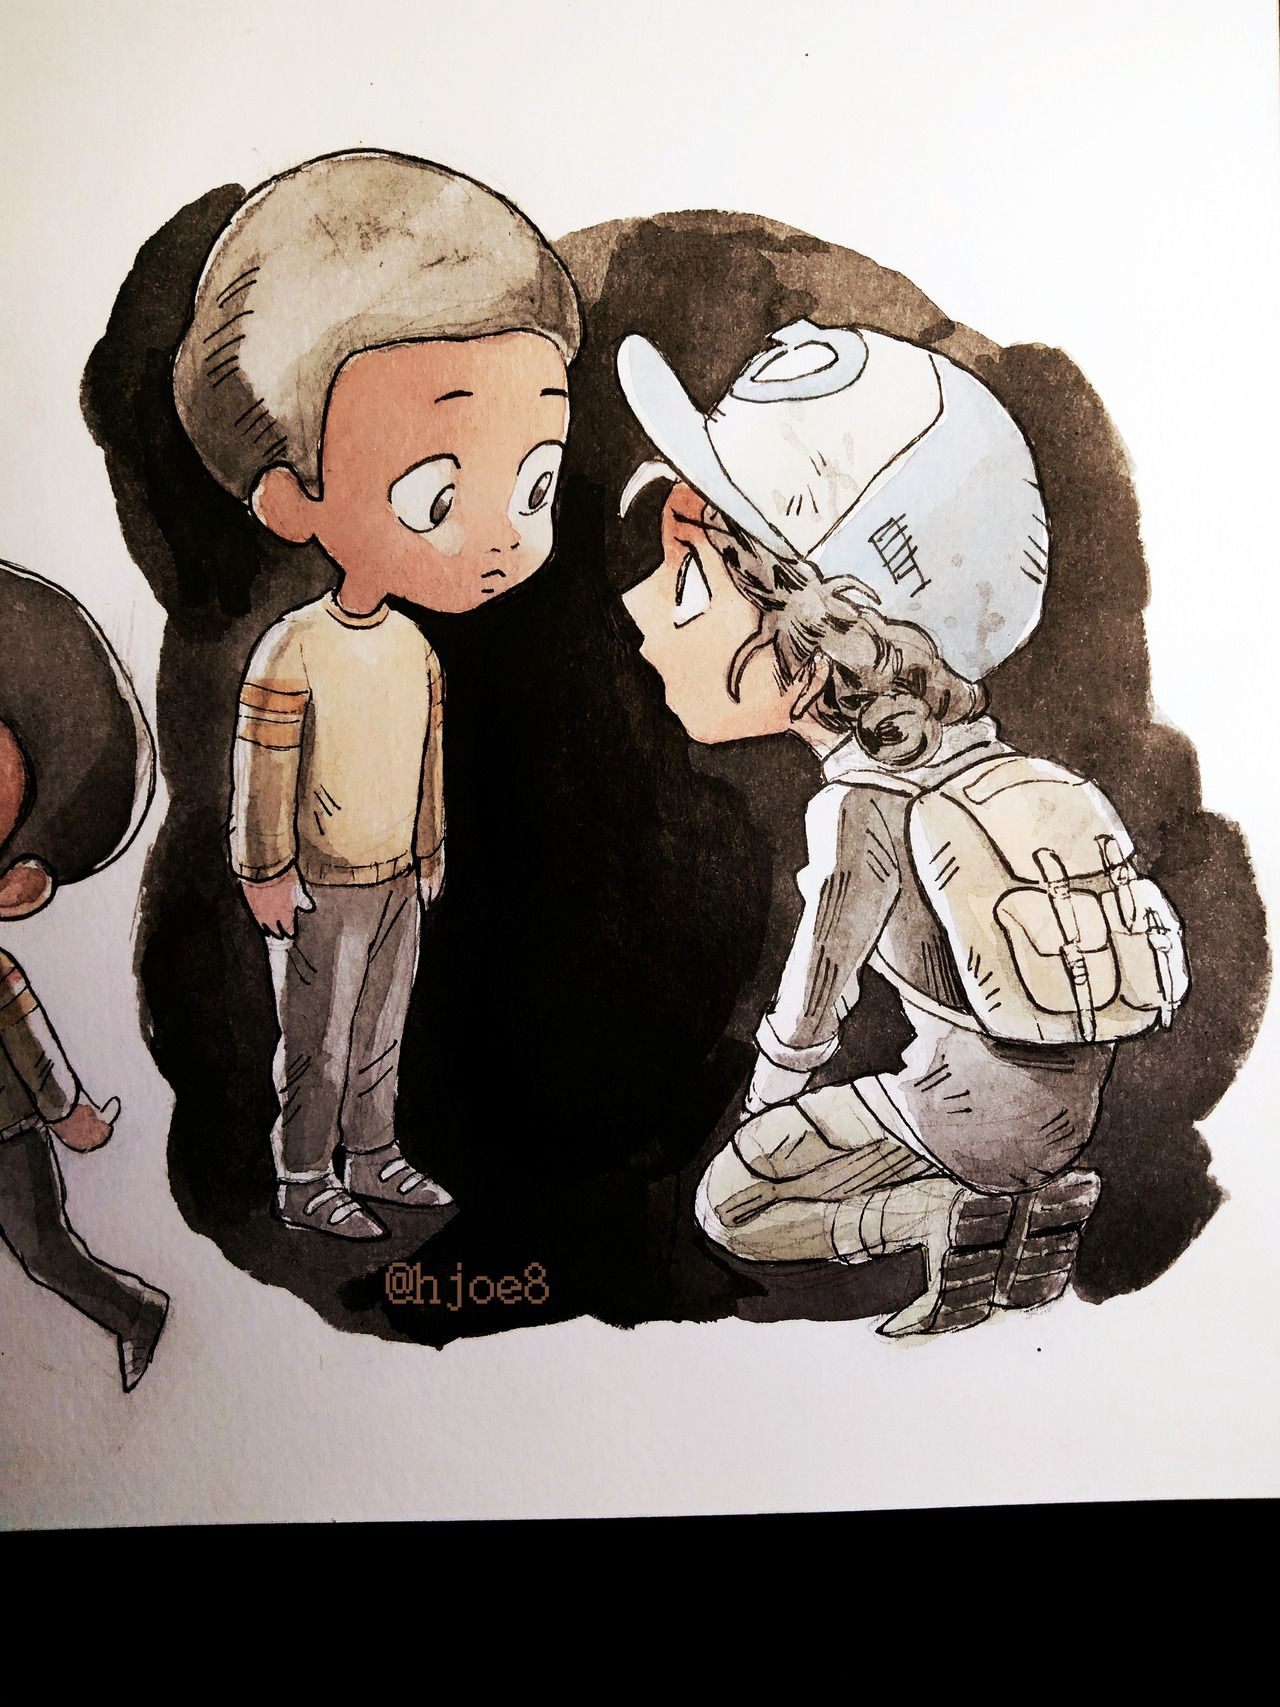 I Love Baby Aj And Clem They R Both Too Precious For The Zombie Apocalypse Walking Dead Game The Walking Dead Telltale The Walking Dead